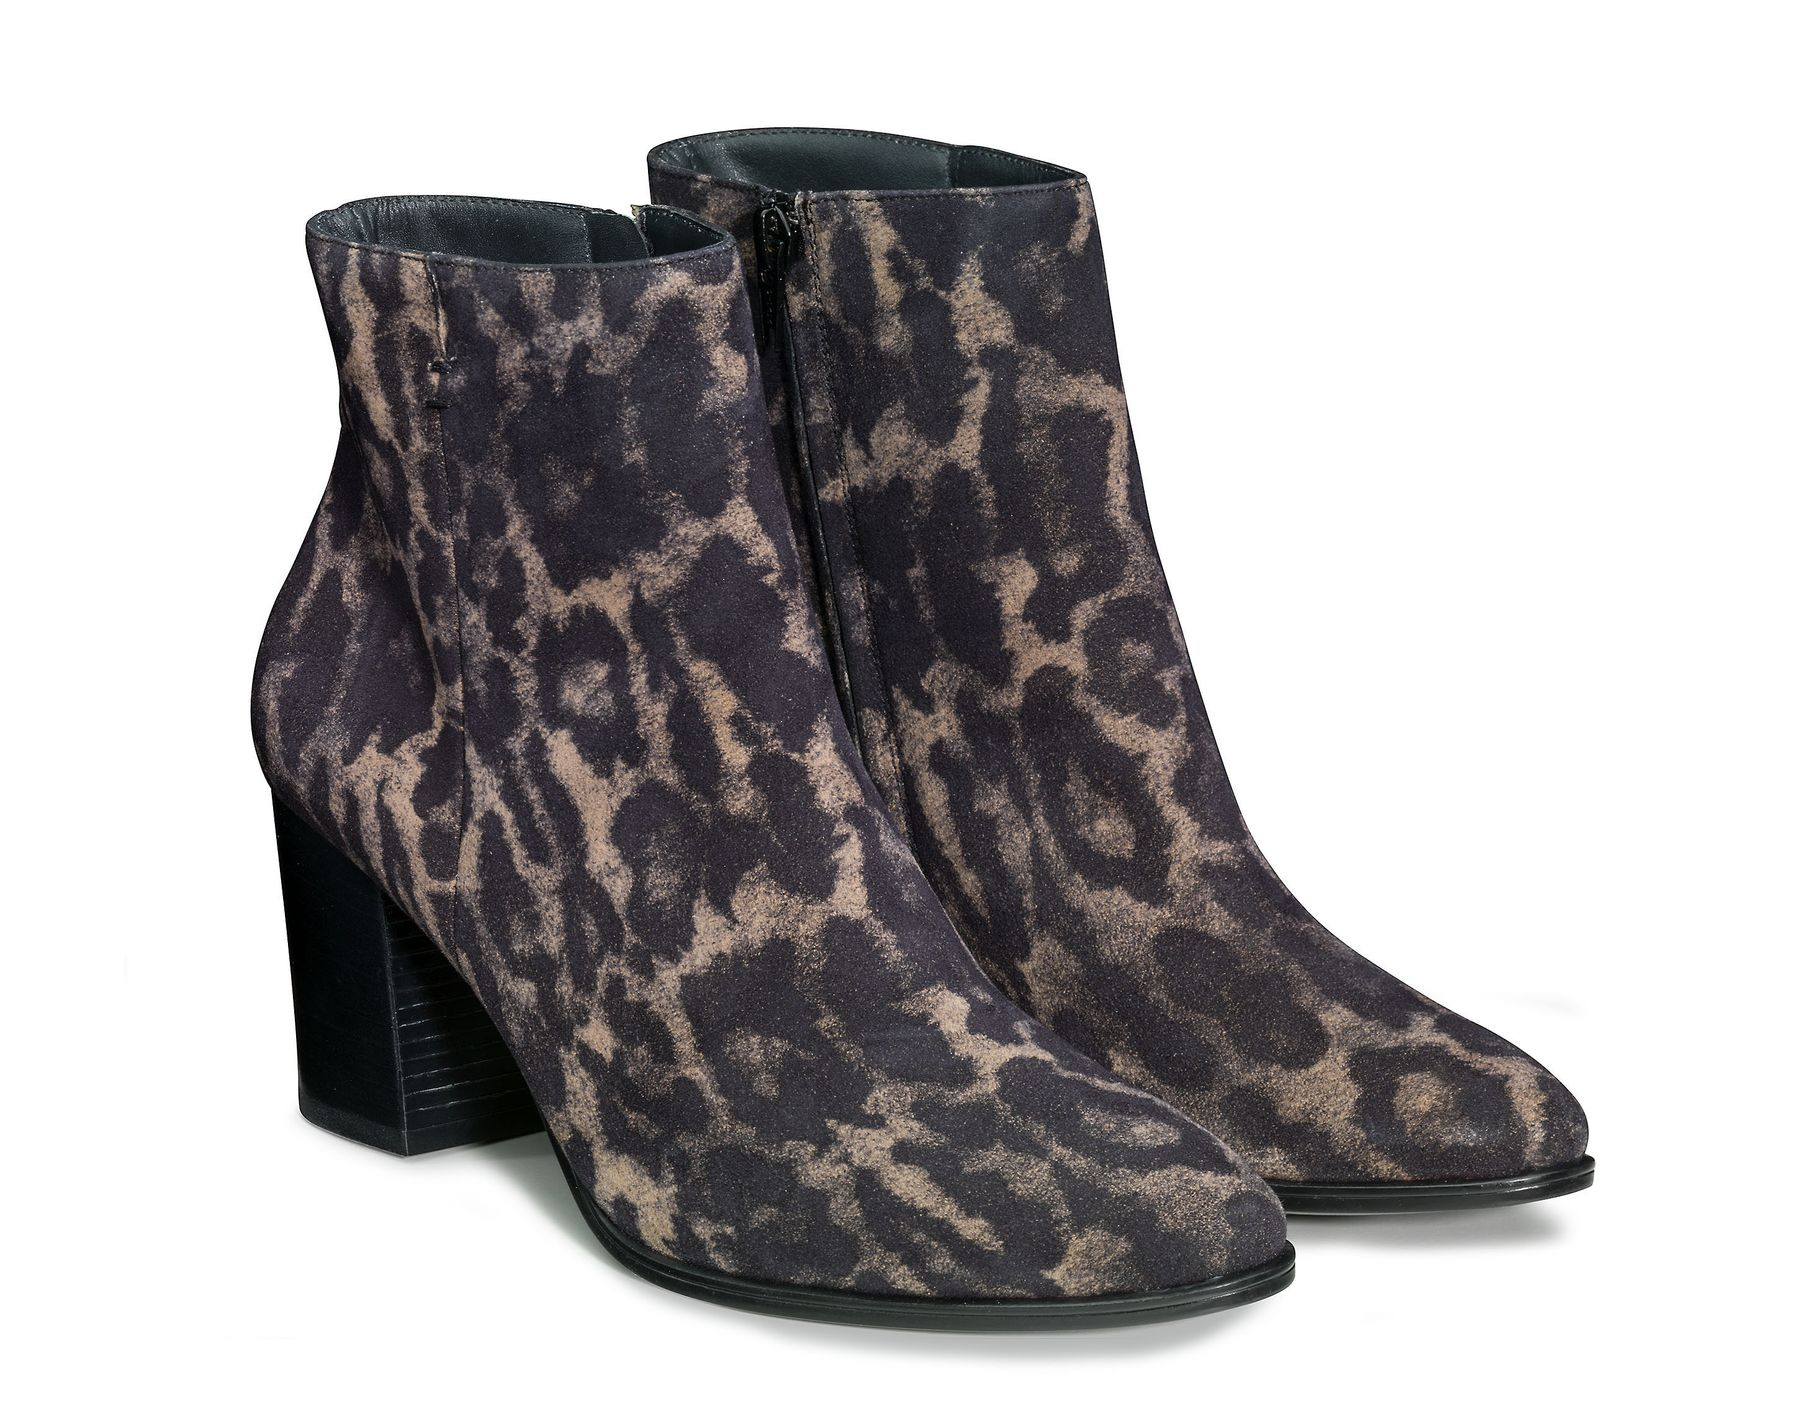 SUPER SOFT ankle boots in black beige Paul Green